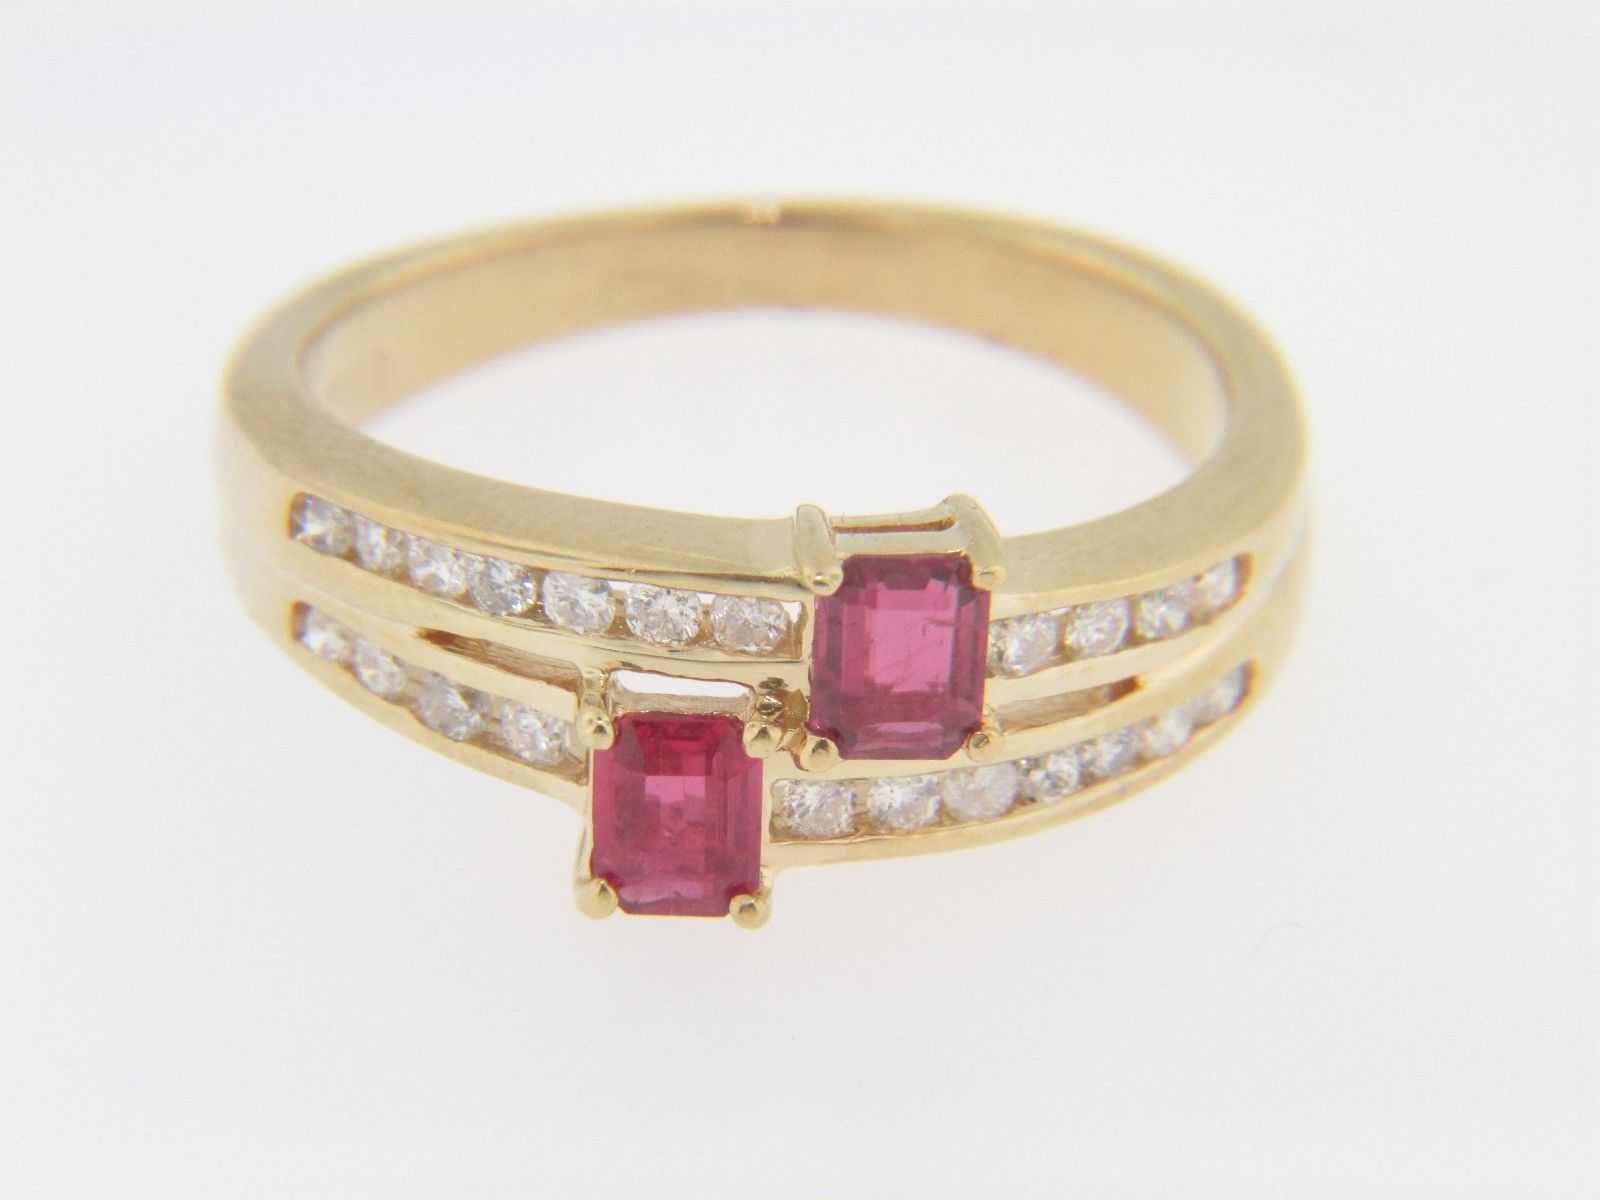 Vintage Emerald Cut Ruby & Diamond Split Band Ring In 14k Yellow Gold Siz